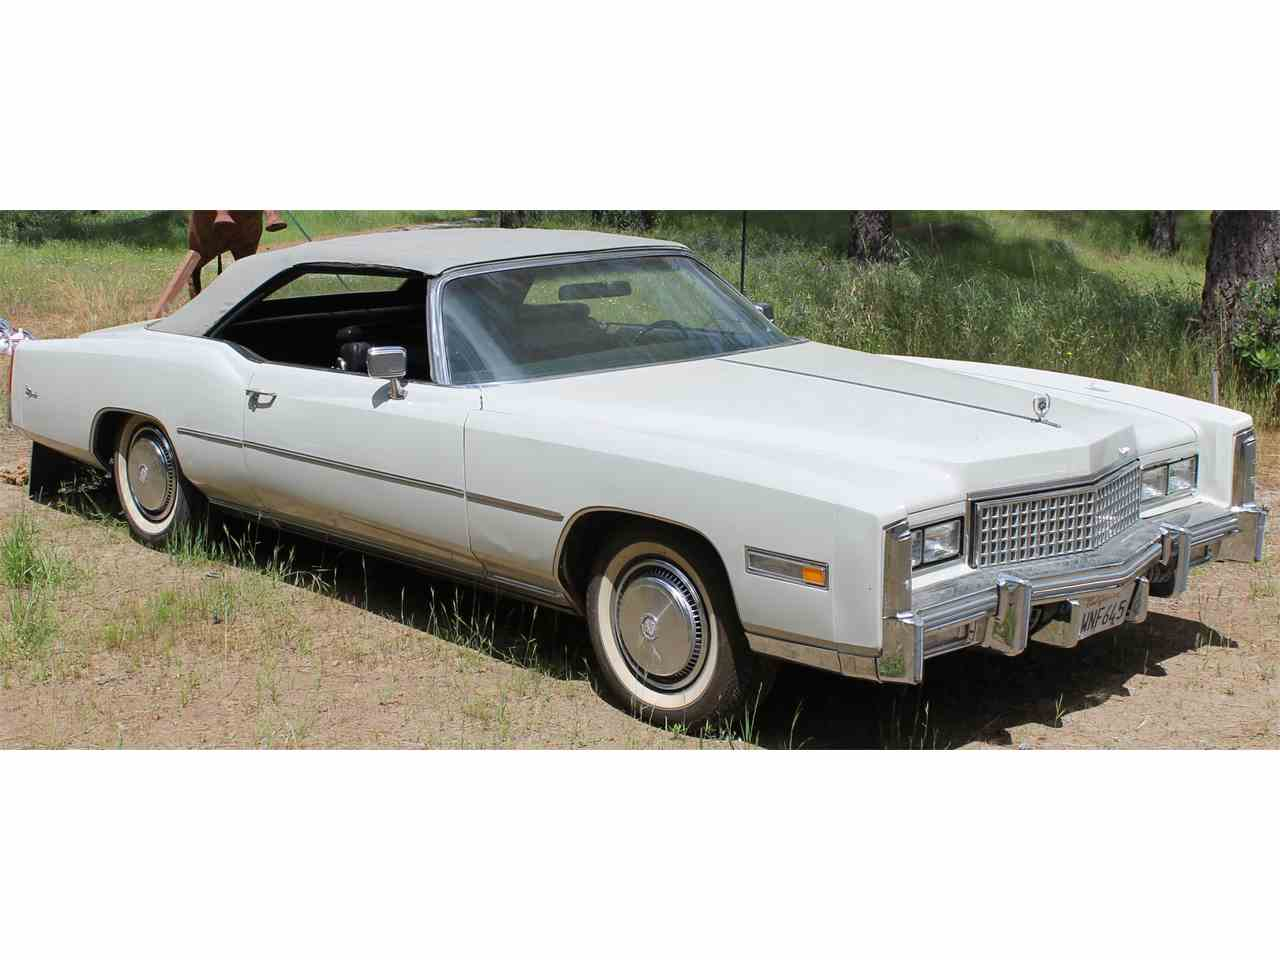 Large Picture of '75 Cadillac Eldorado located in Sutter Creek California - $10,000.00 Offered by a Private Seller - I5ZP